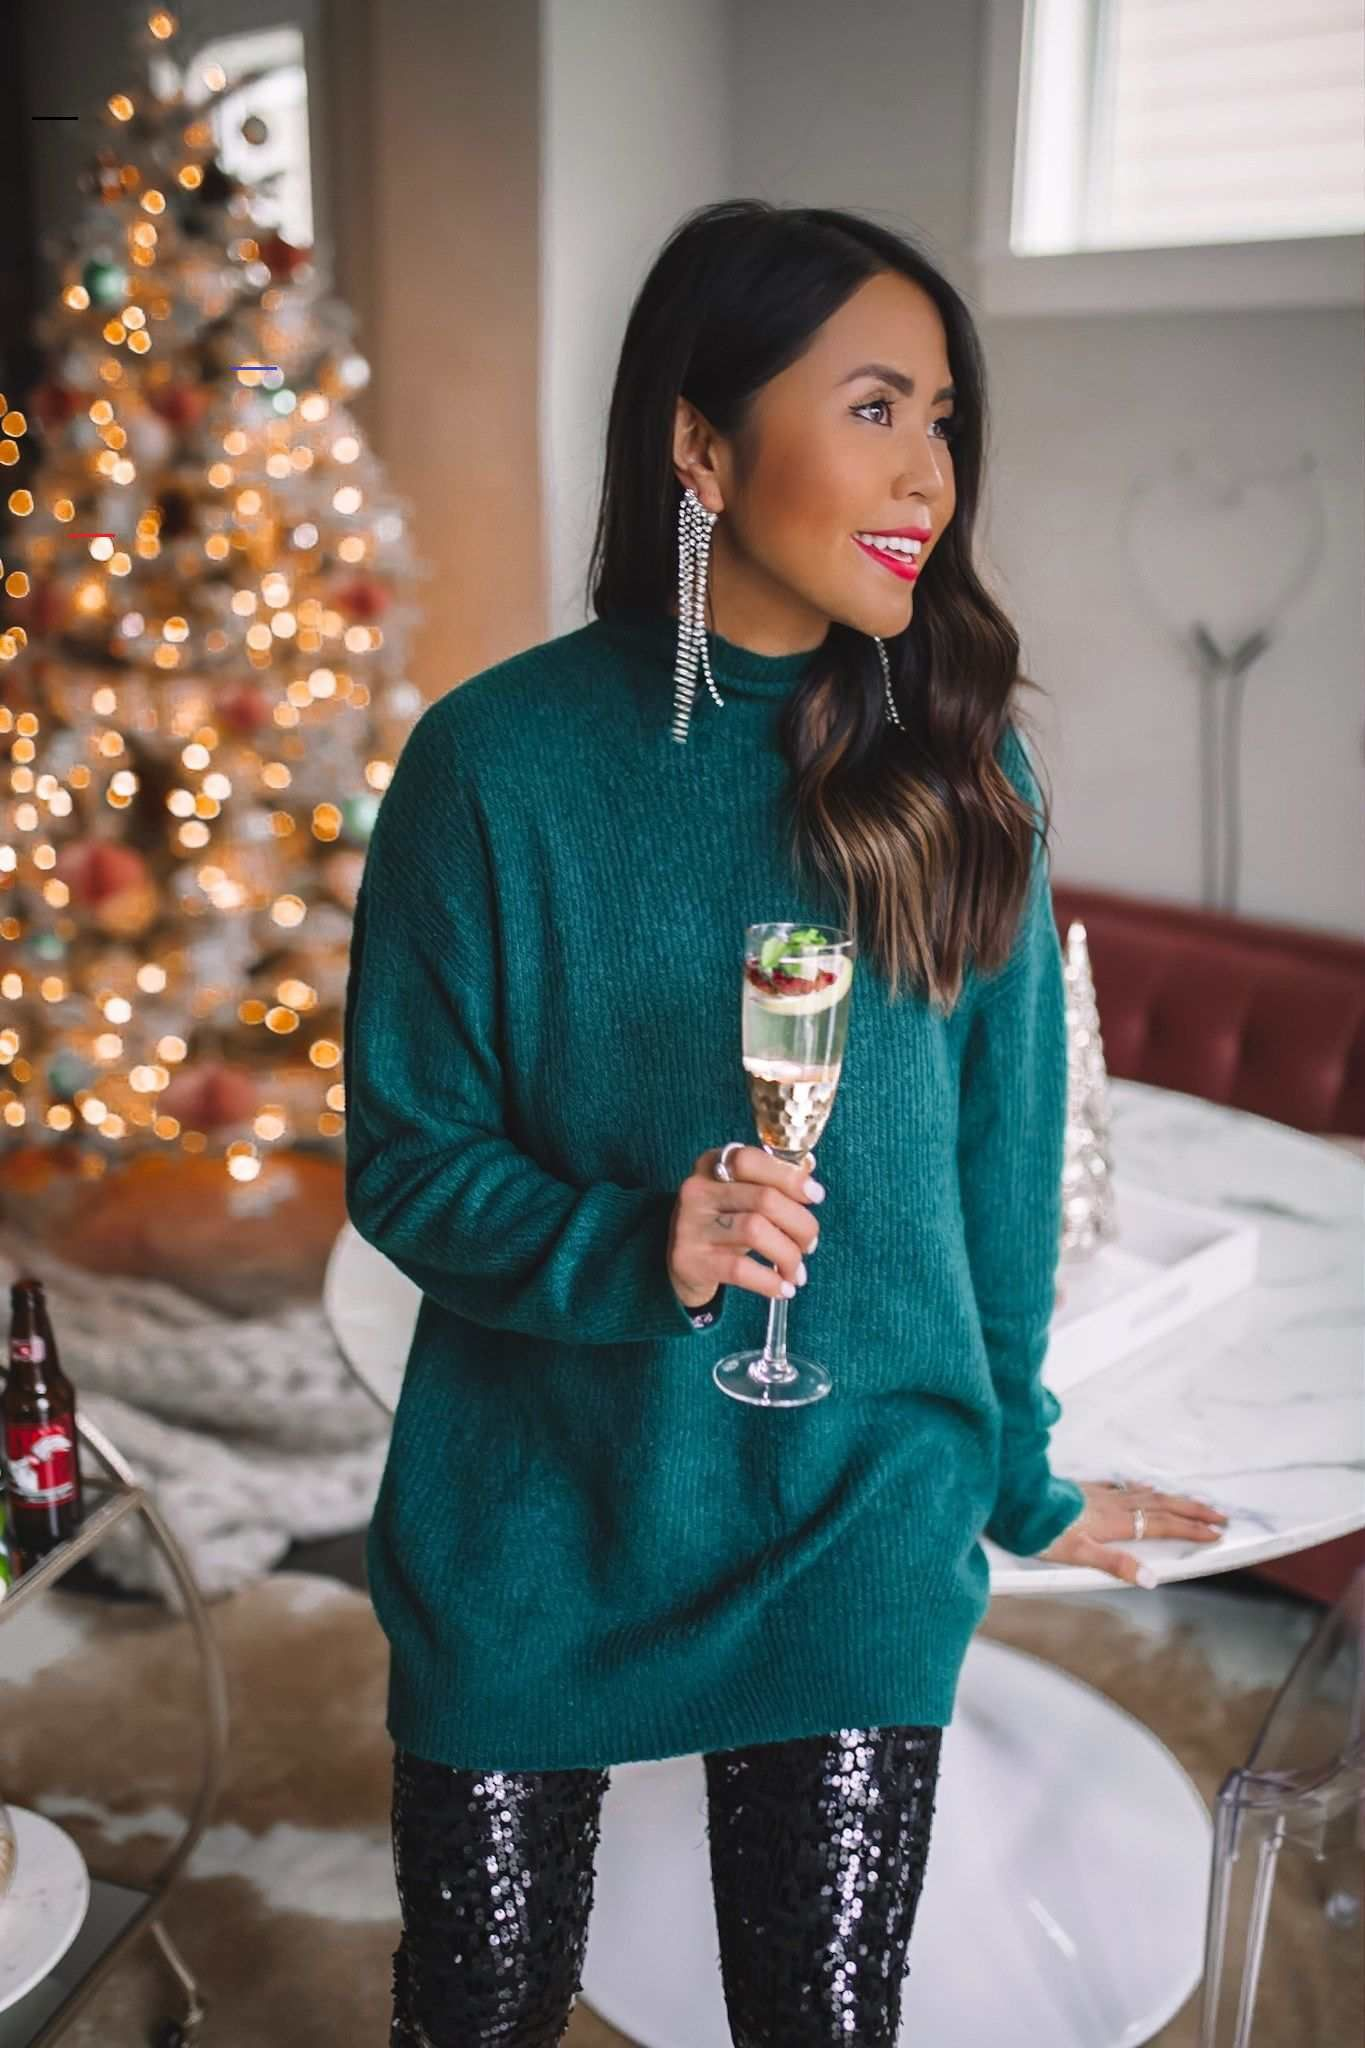 New Years Eve outfits, ideas, nyeoutfitideas Sparkle